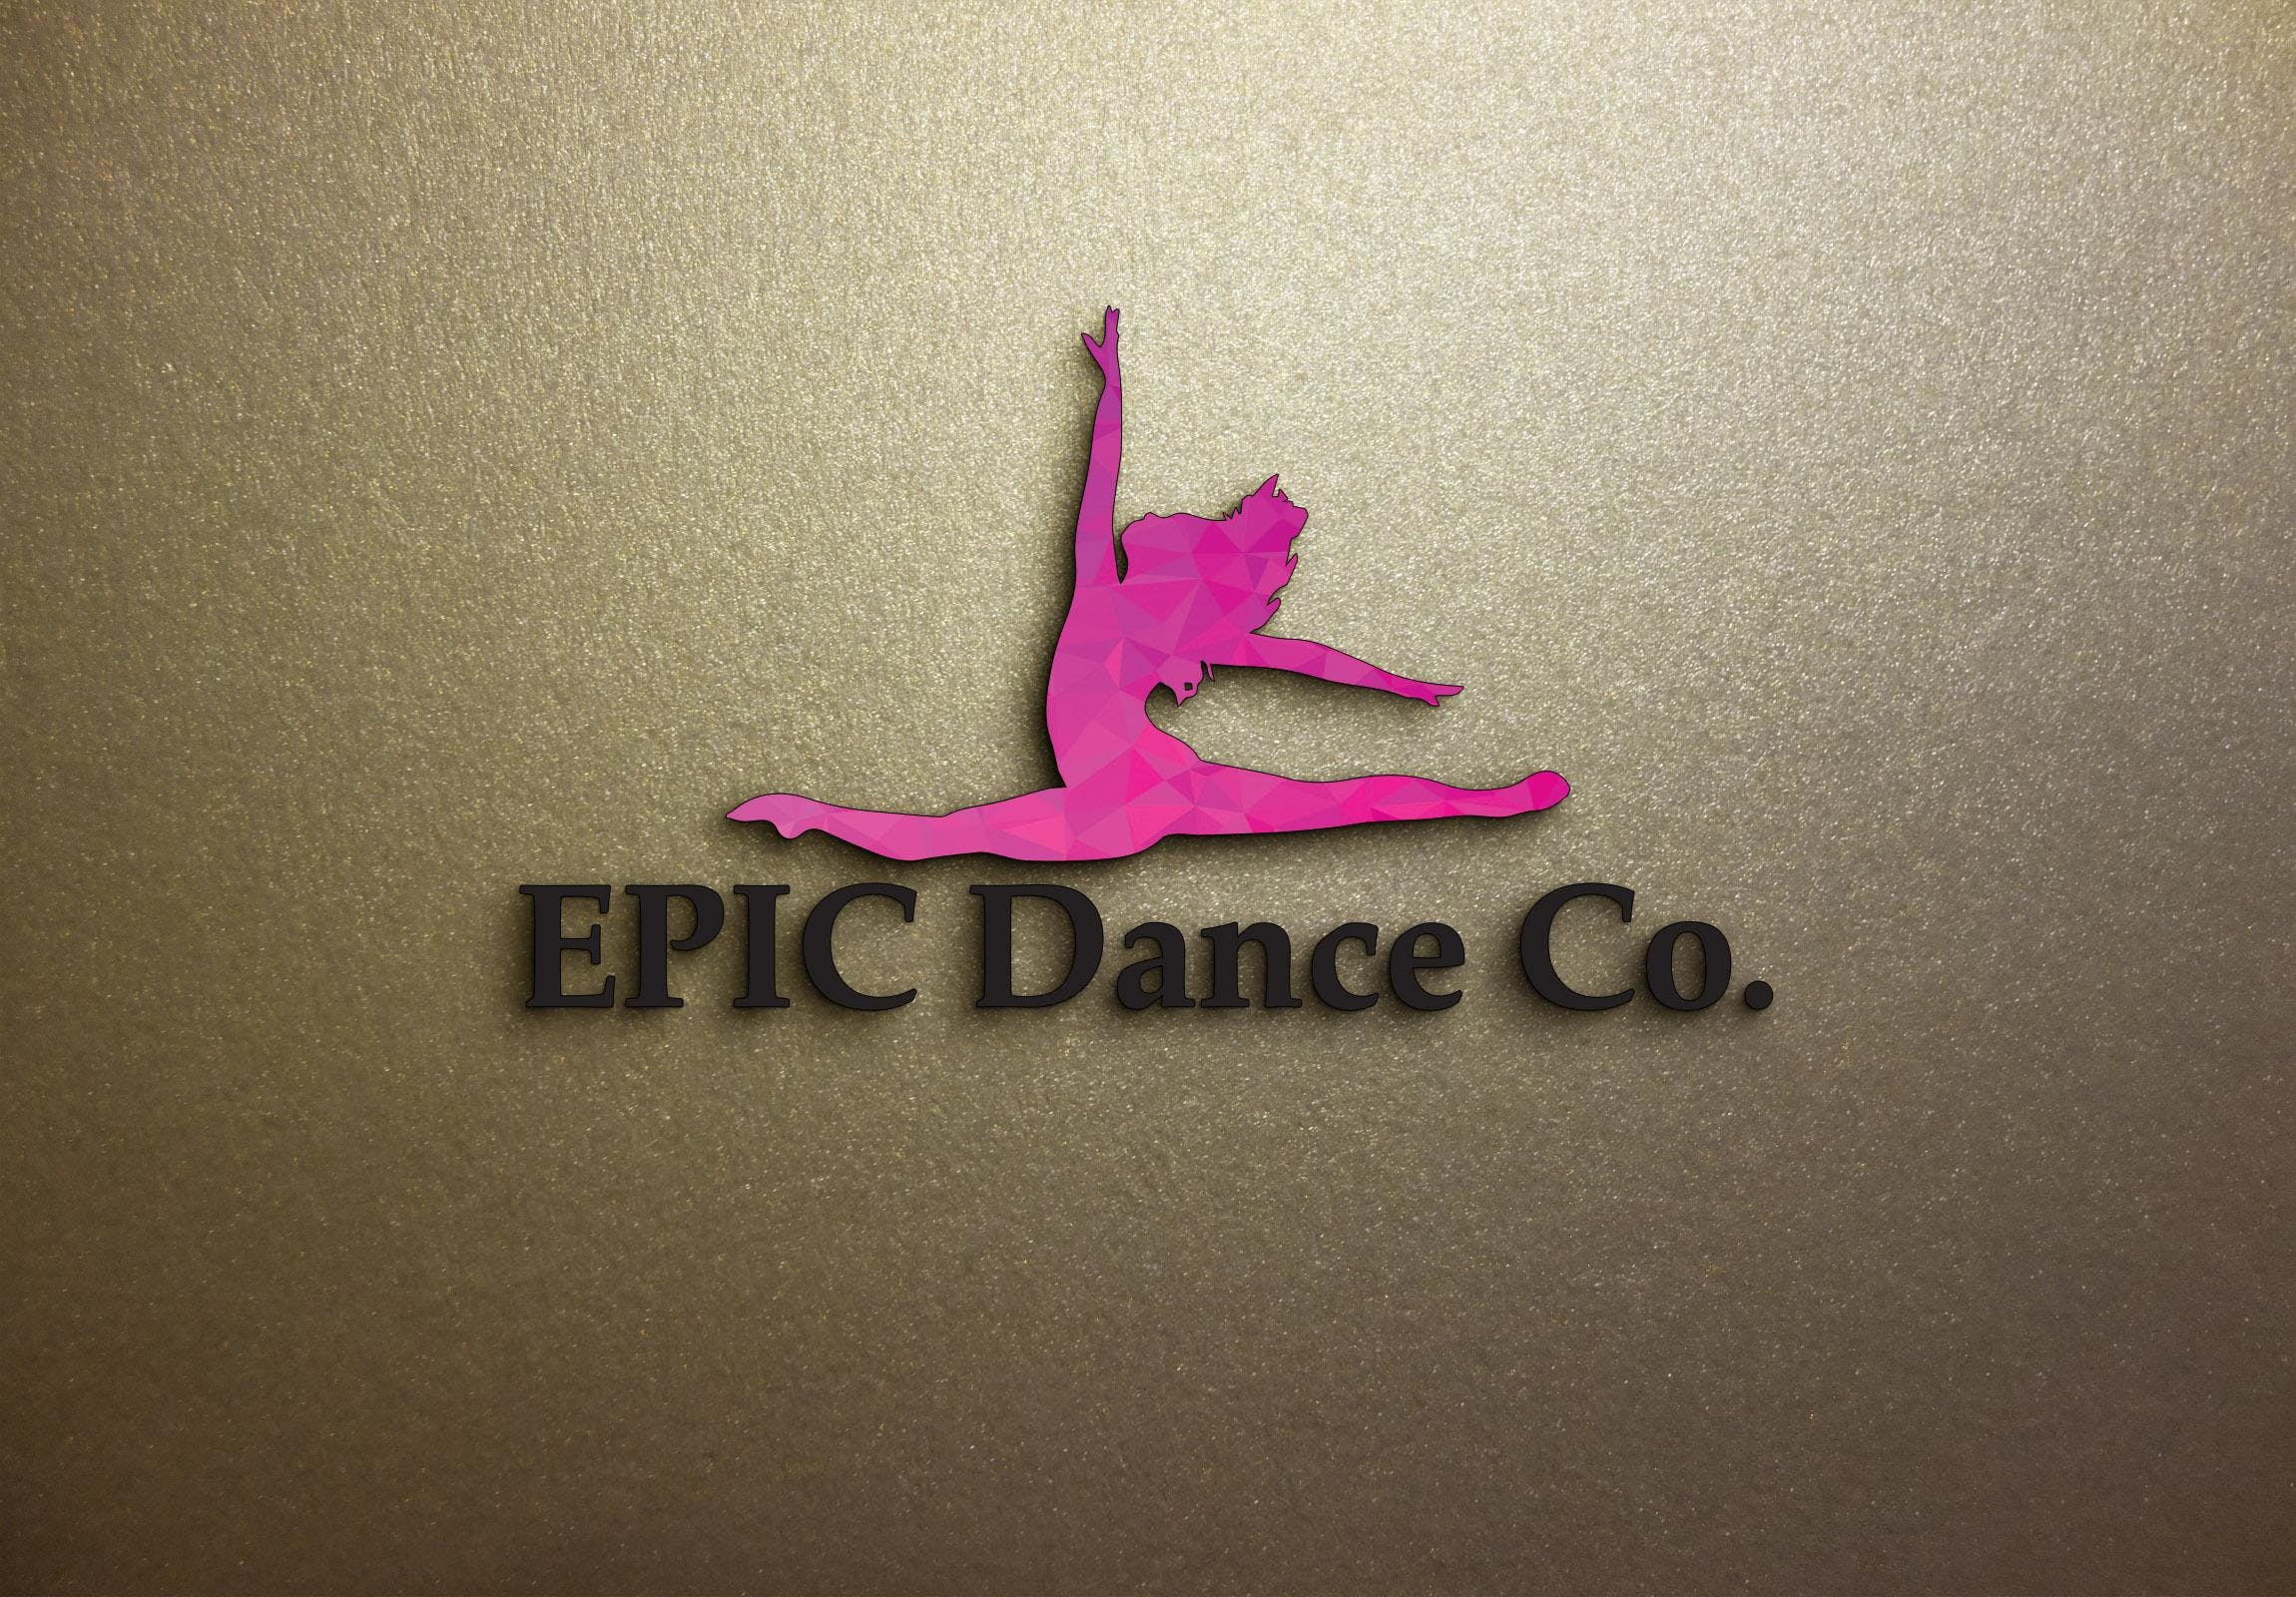 EPIC Dance Co. Gymnastics Classes